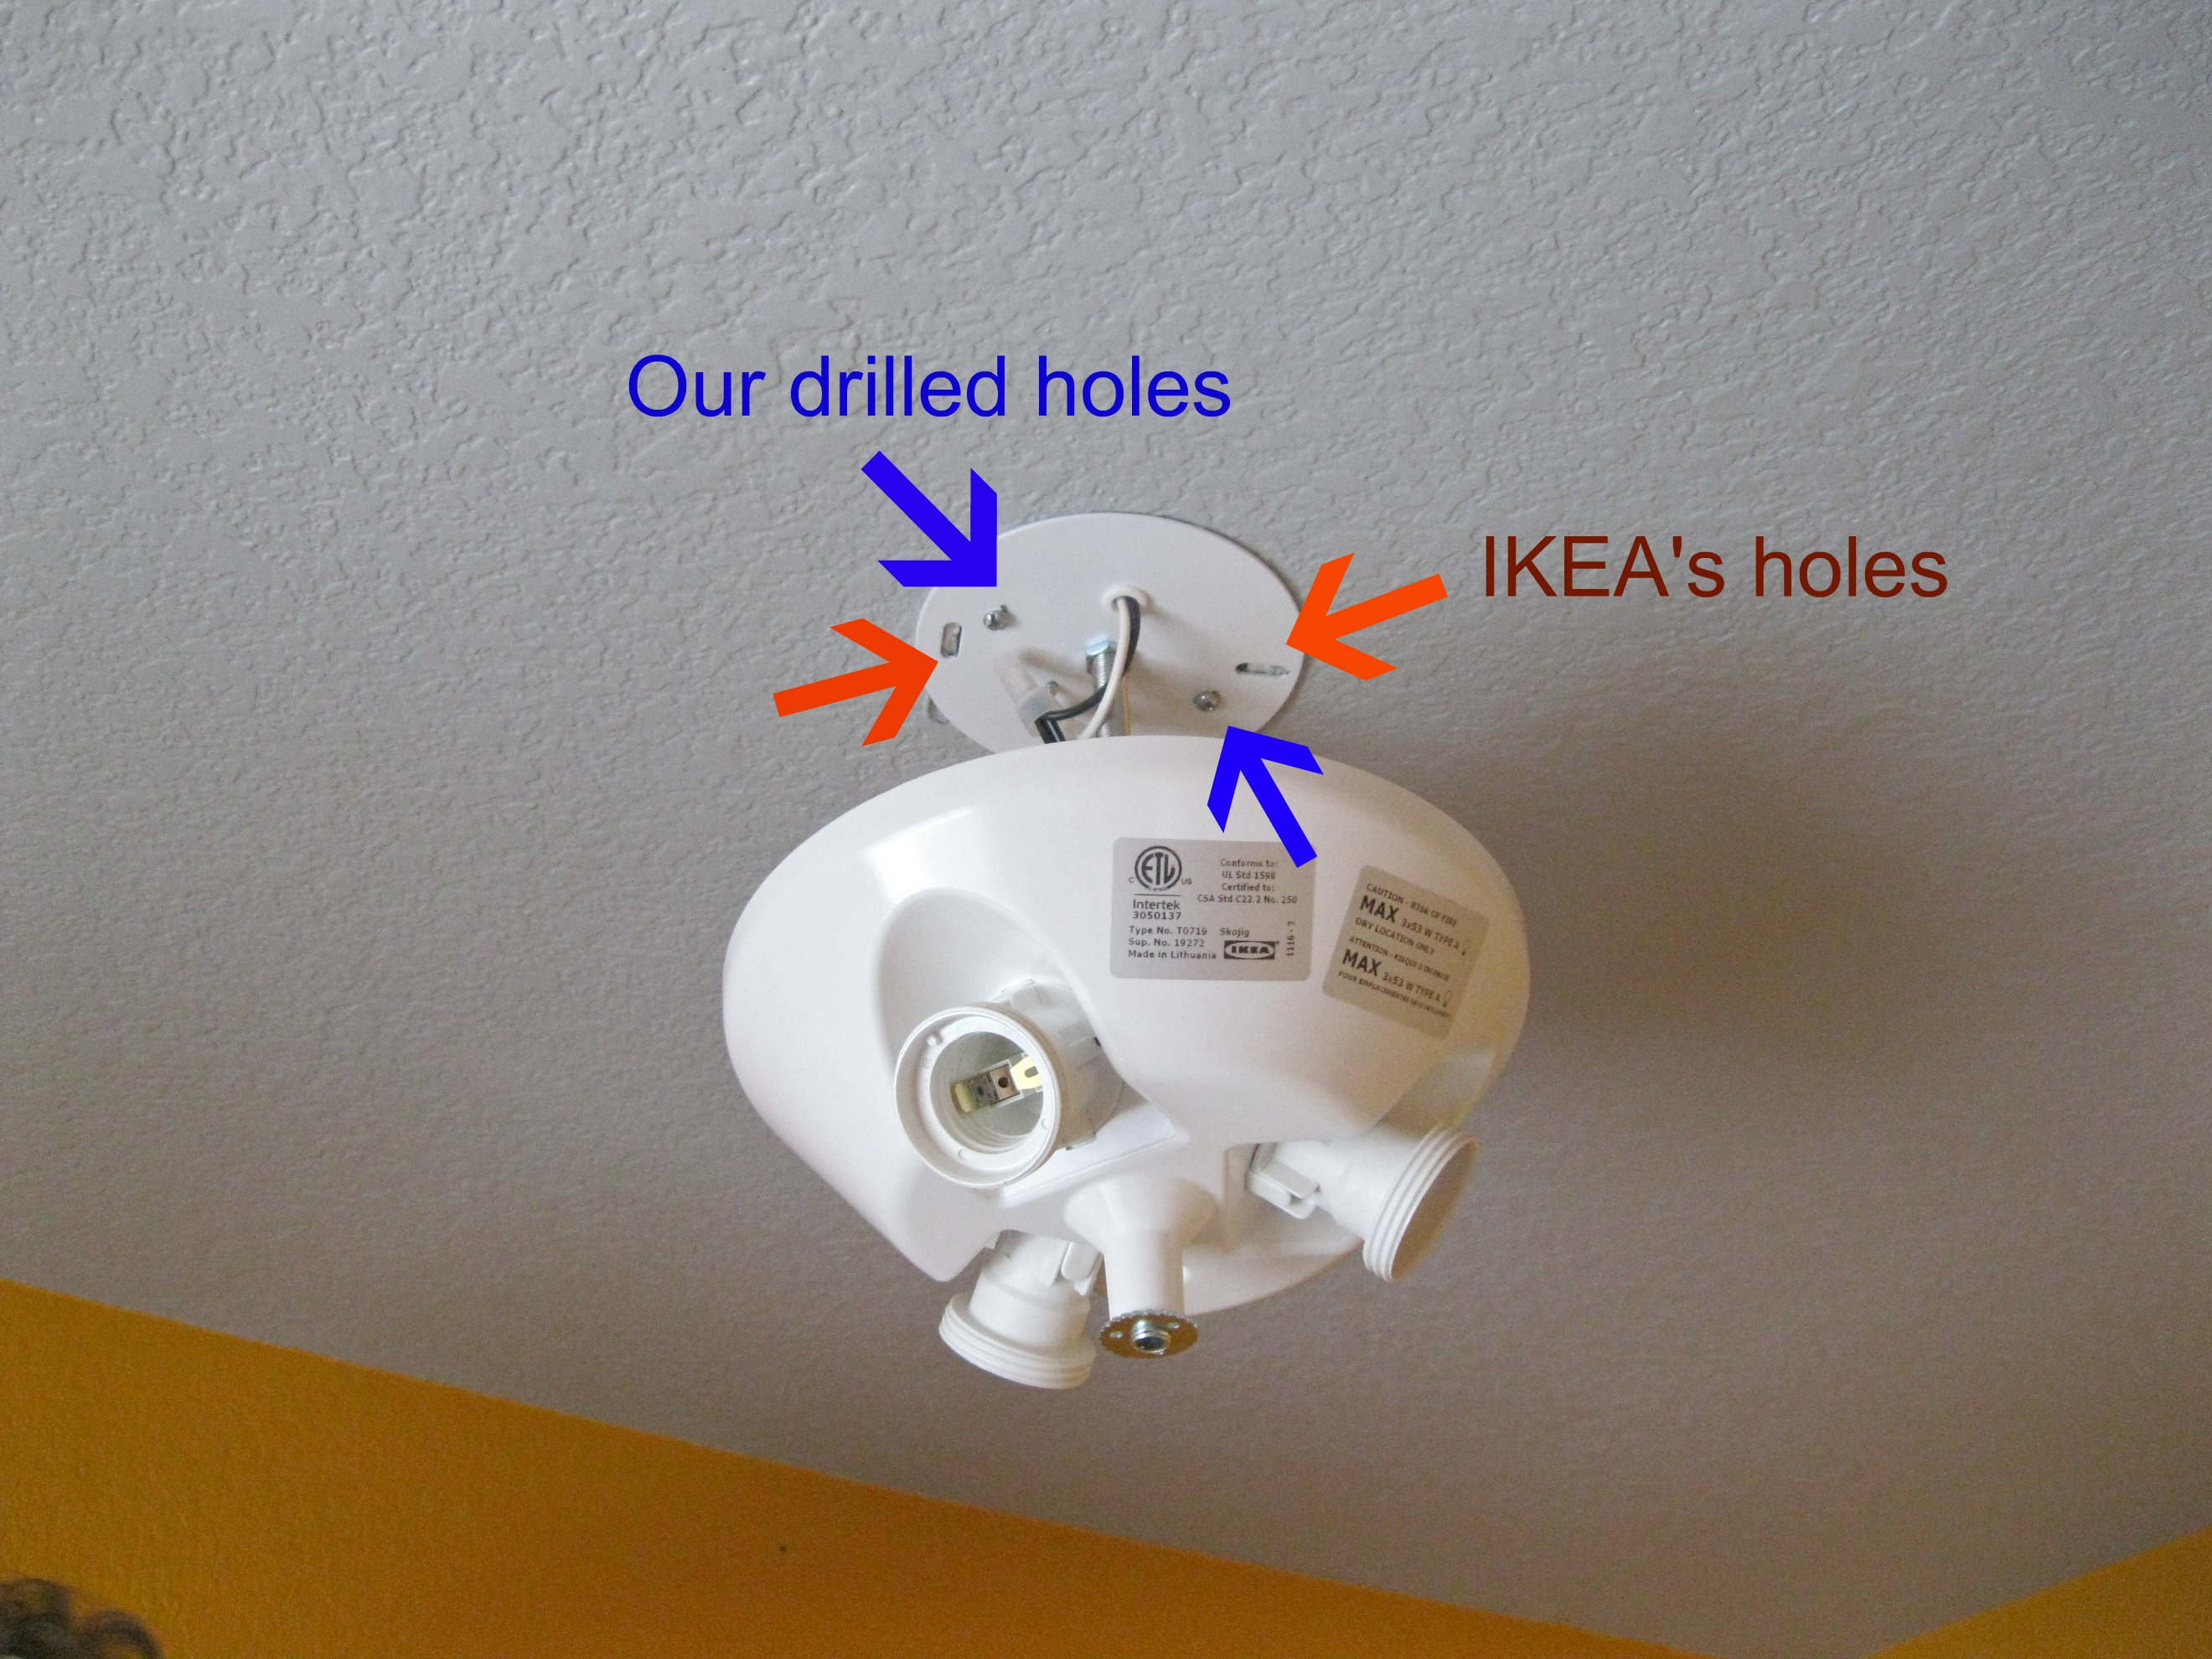 ikea ceiling lamps lighting. basically ikea ceiling lamps lighting